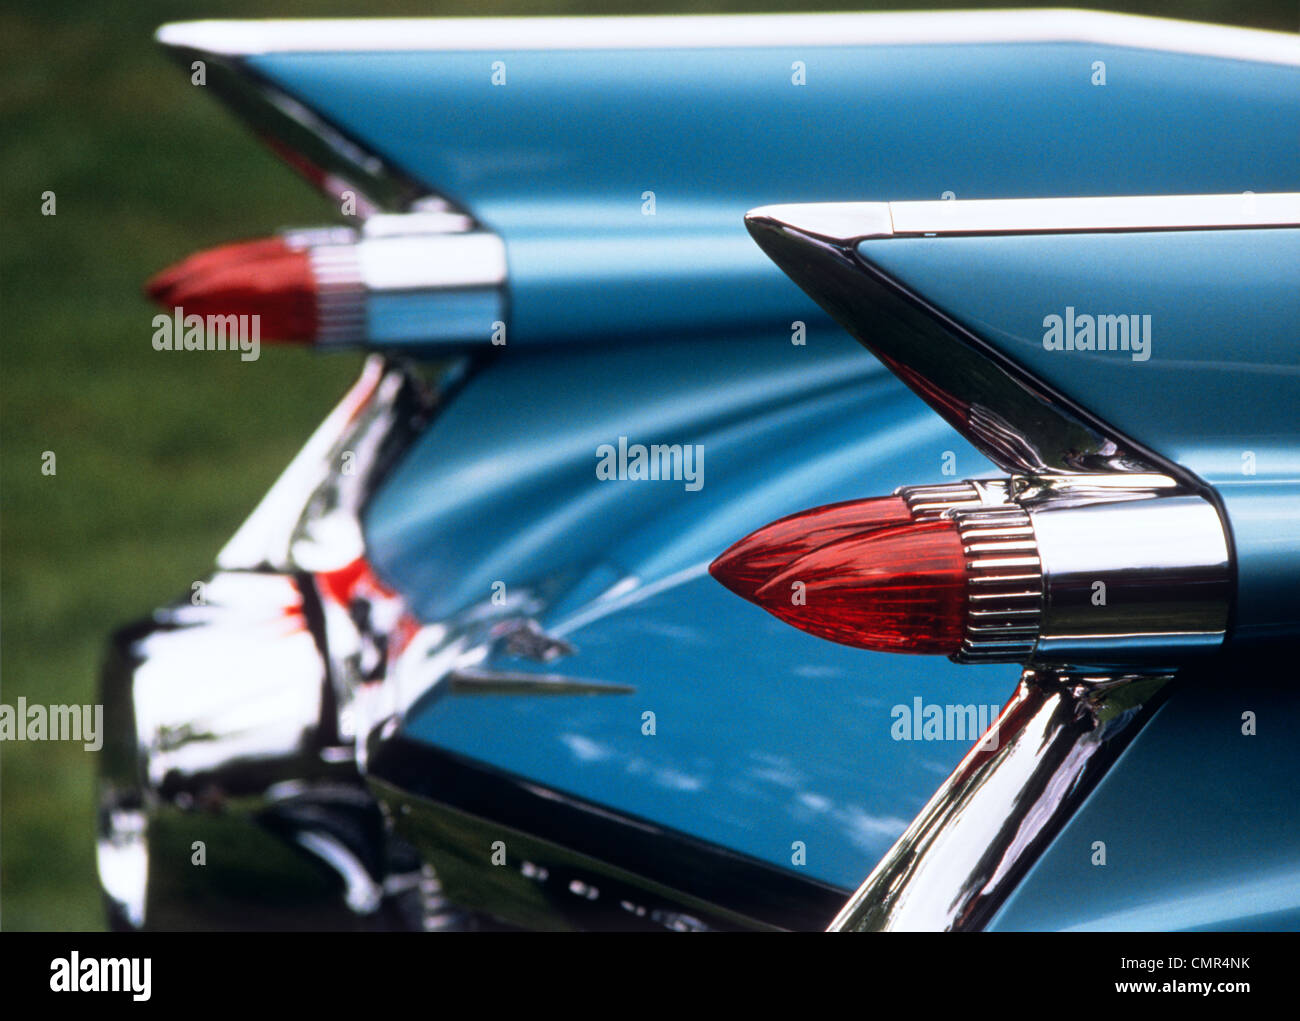 Car With Fins Stock Photos Images Alamy 1960 Plymouth Fury Station Wagon 1950s 1960s Detail Rear Tail Lights Blue Cadillac Automobile Image